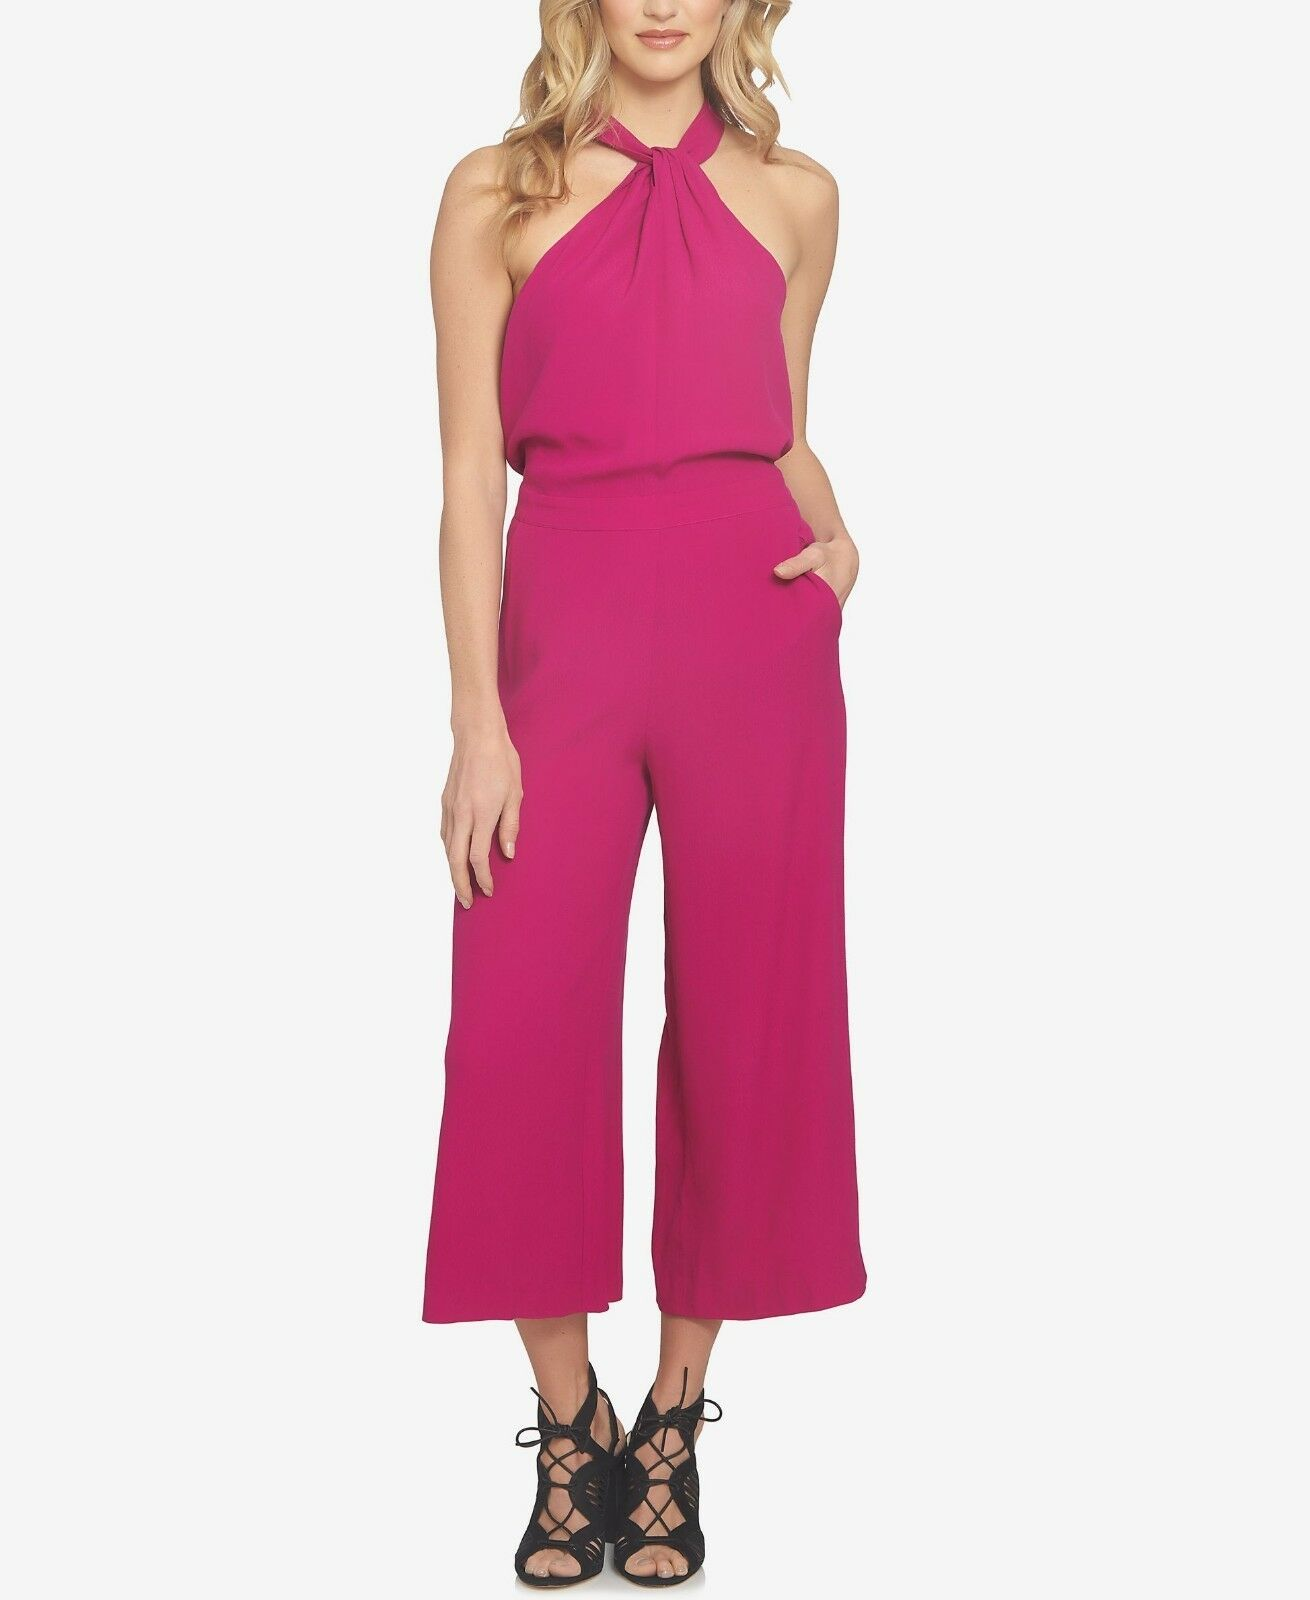 NEW 1.STATE Women's Cropped Halter Jumpsuit Tropic Berry MSRP  129.00